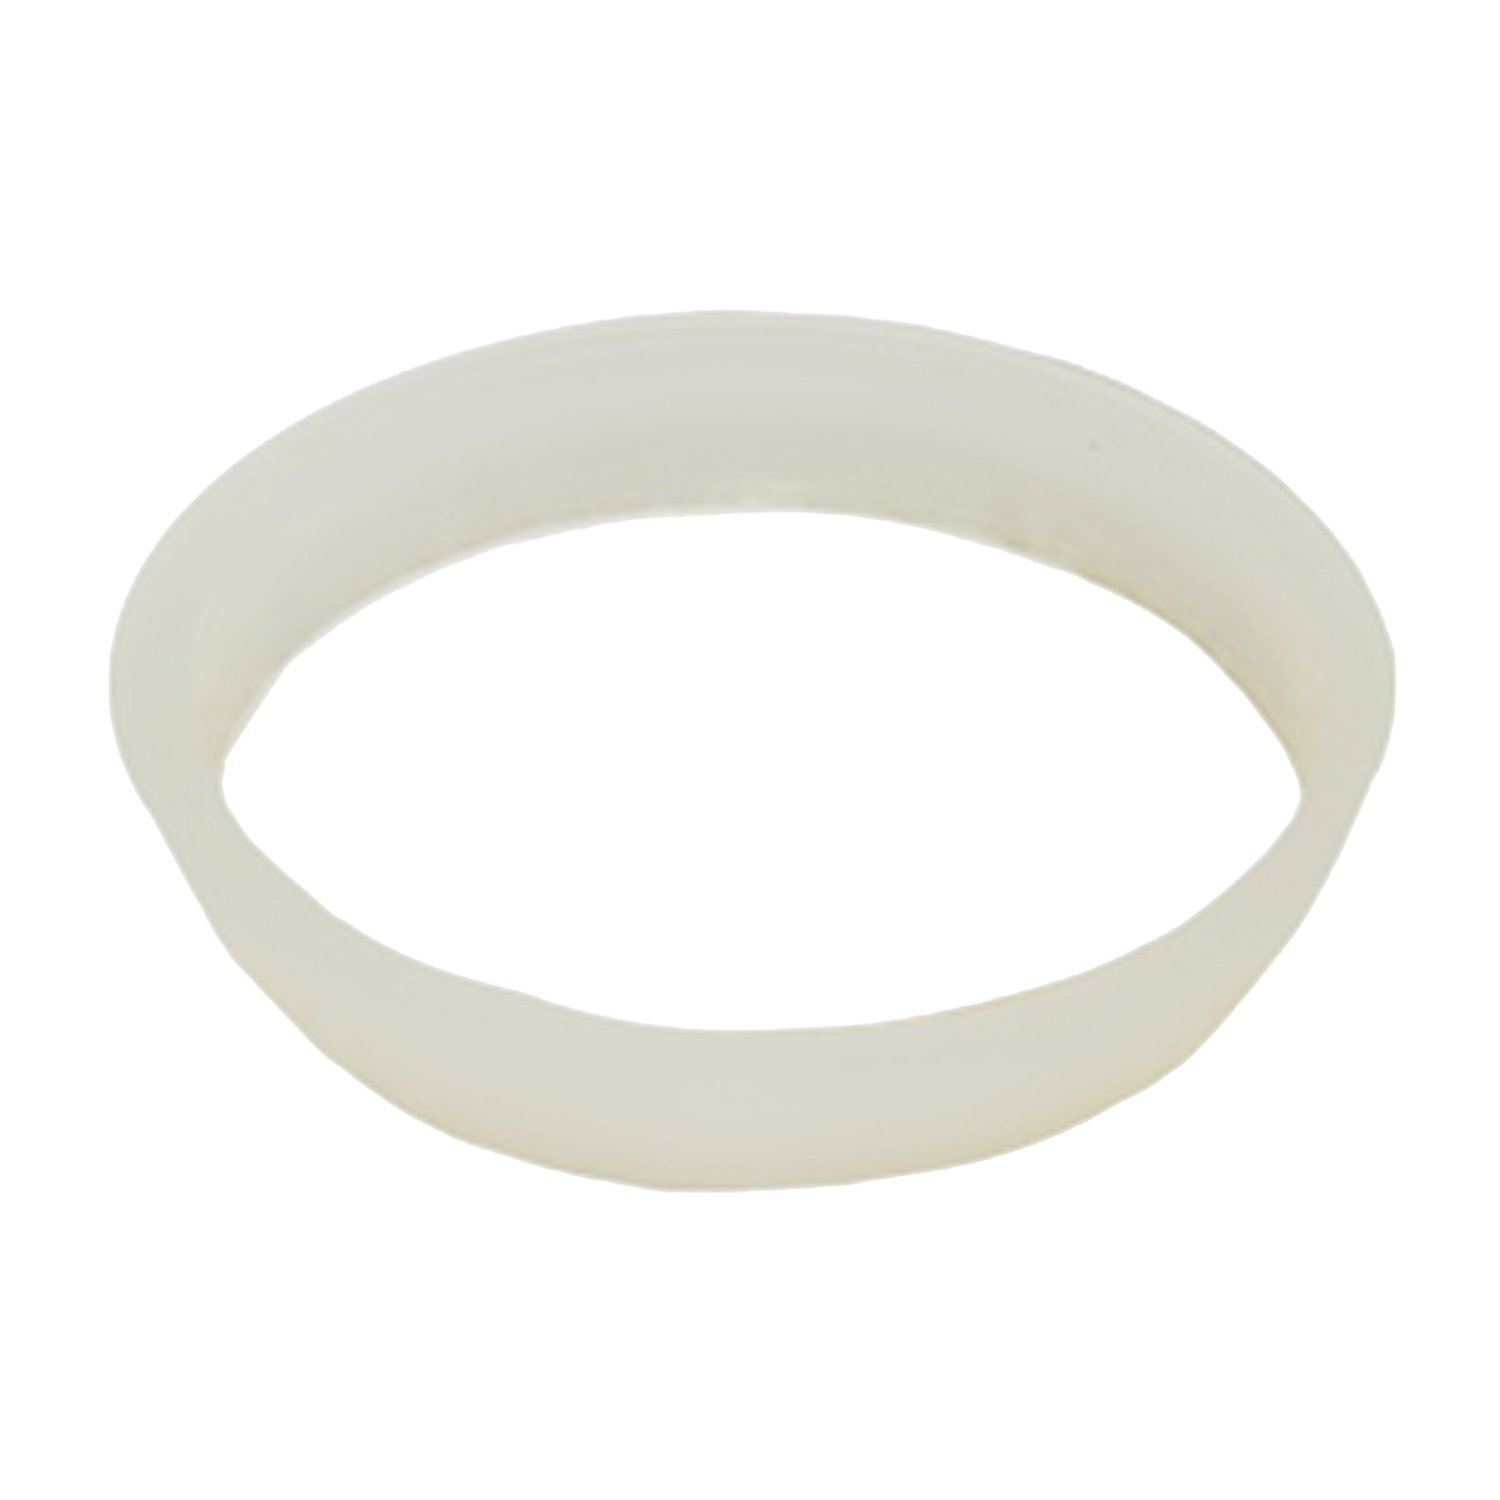 LASCO 02-2282D 1-1/2-Inch Plastic Beveled Slip Joint Washer, Standard Thickness, 100-Pack